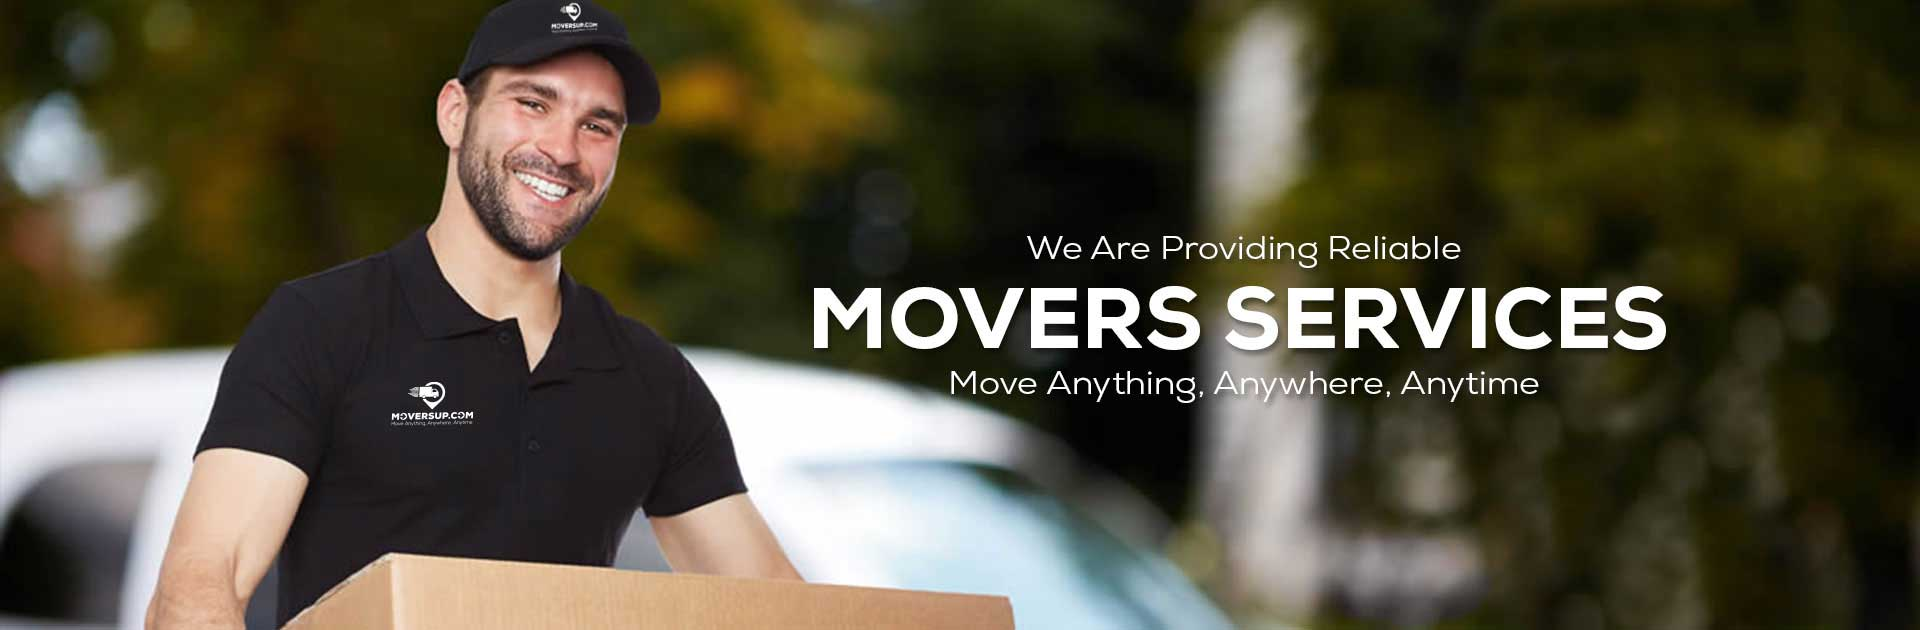 Movers And Packers Services, Moving And Packing Company